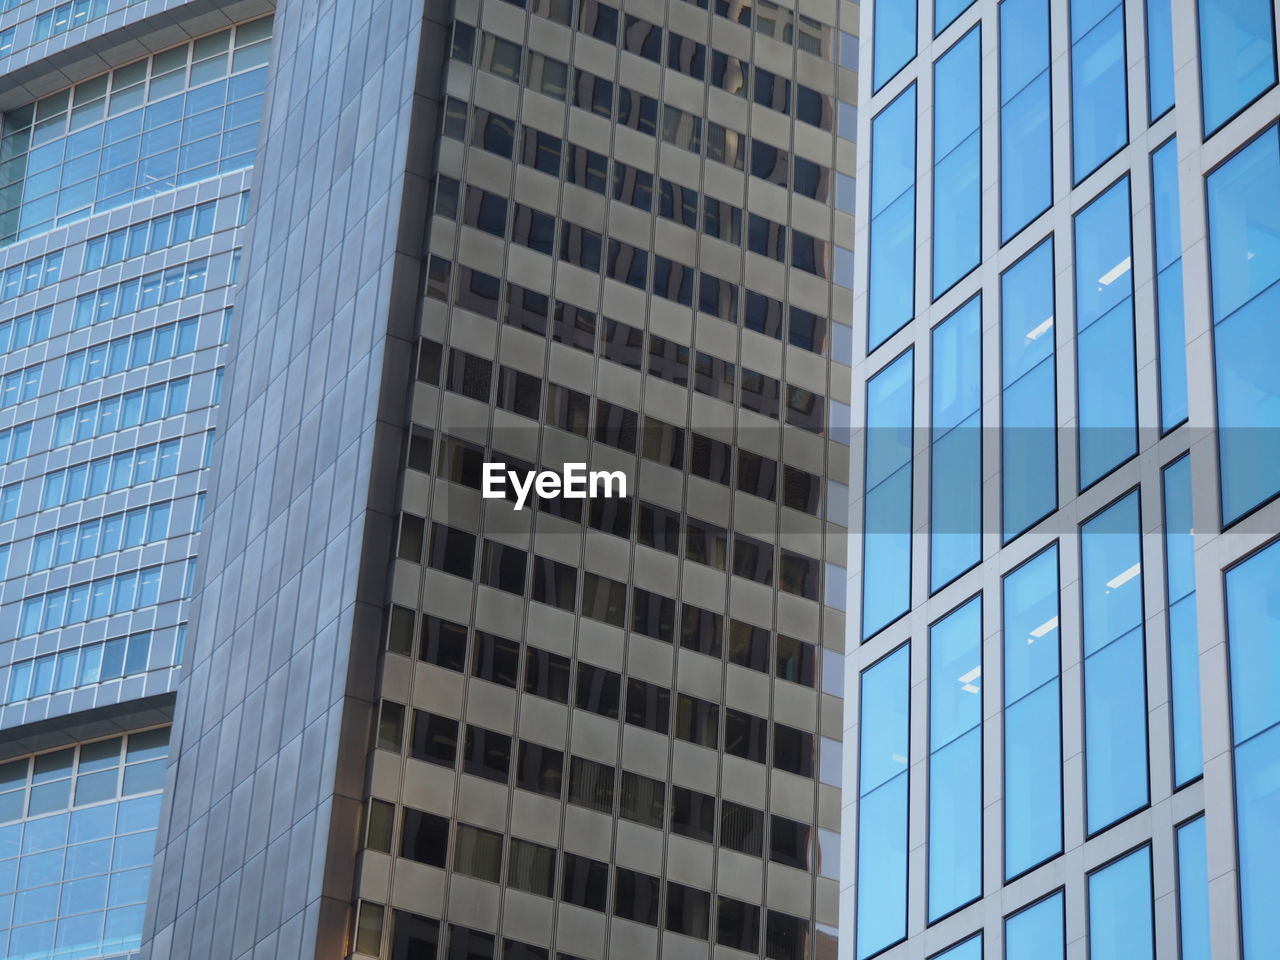 architecture, modern, building exterior, built structure, glass - material, window, low angle view, skyscraper, office building exterior, day, pattern, blue, no people, outdoors, city, growth, corporate business, sky